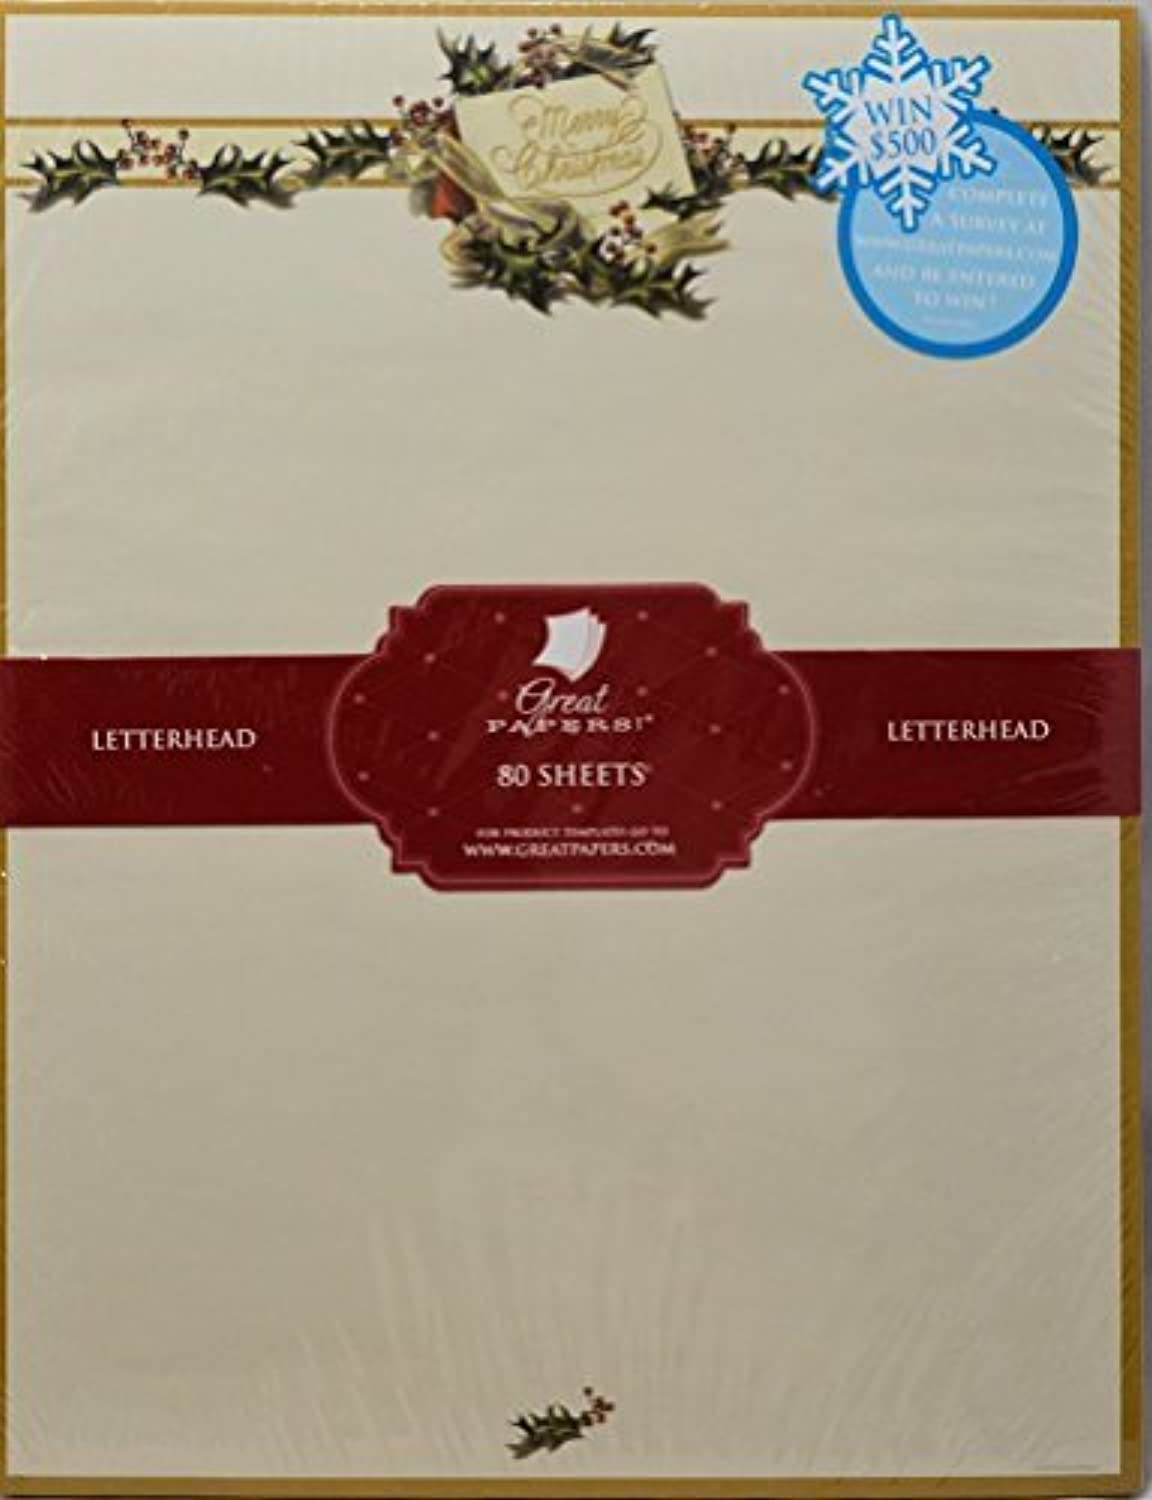 Vintage Christmas Holly Stationery - 80 Sheets by Great Great Great Papers  B018REEQ4G | 2019  44fd6c